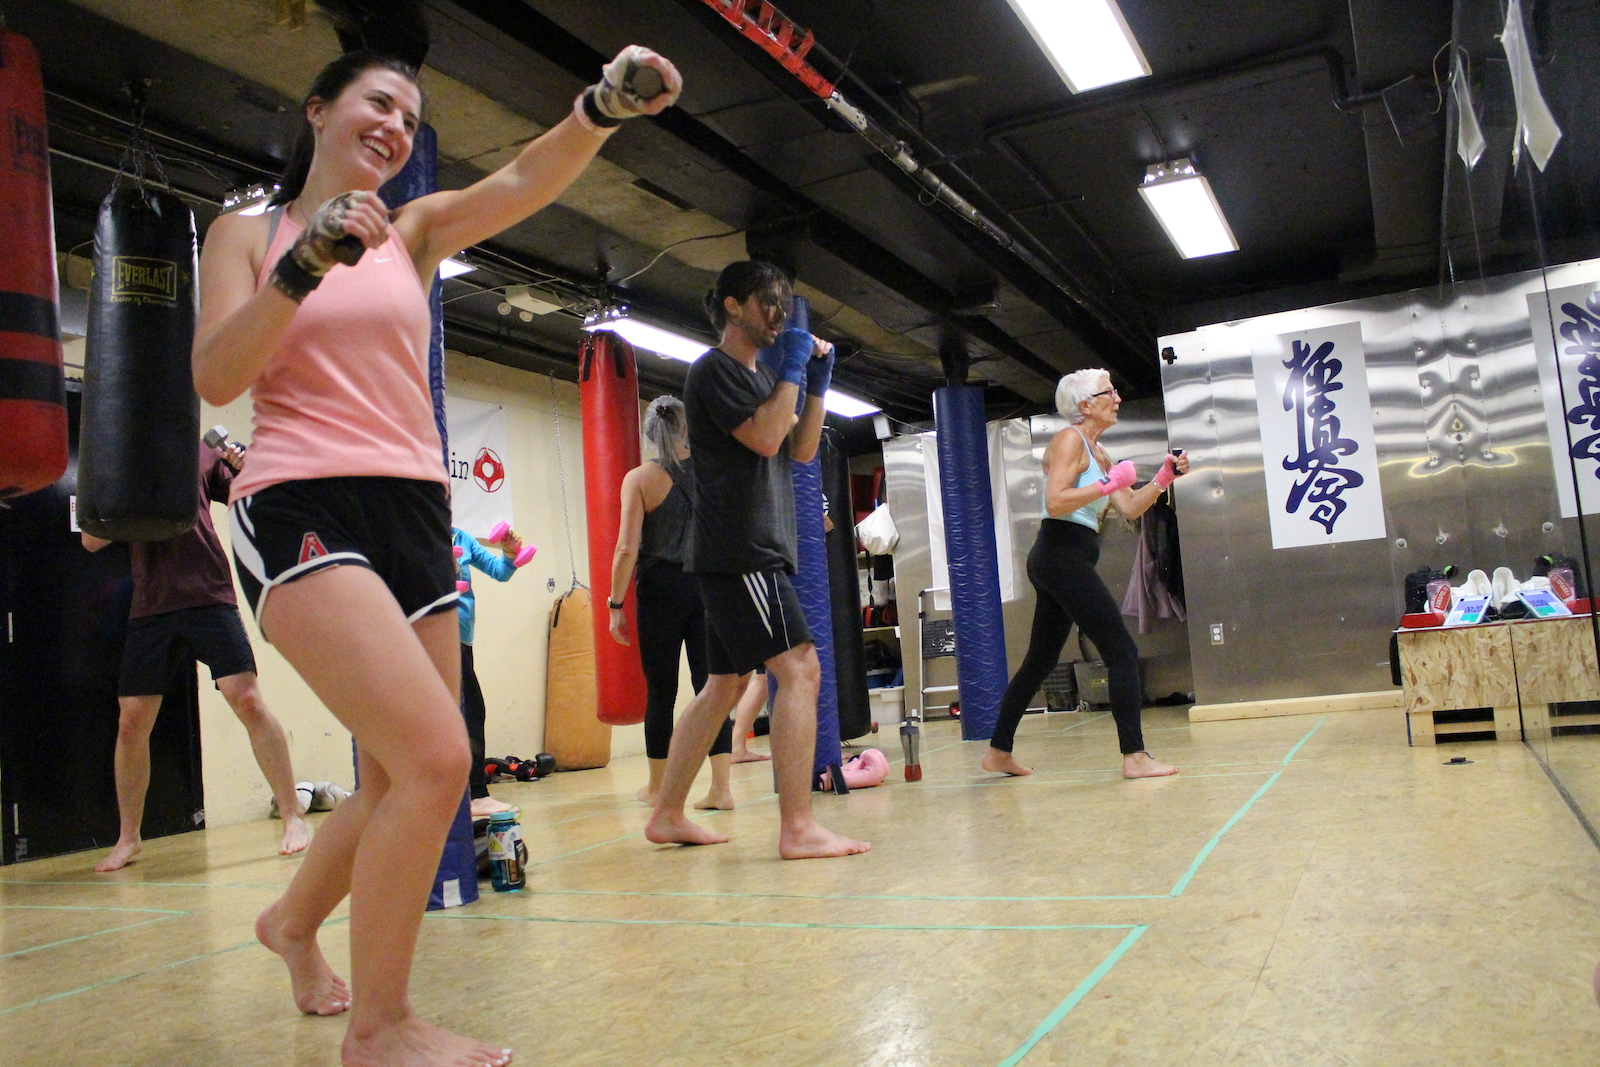 Mixed adult kickboxing class